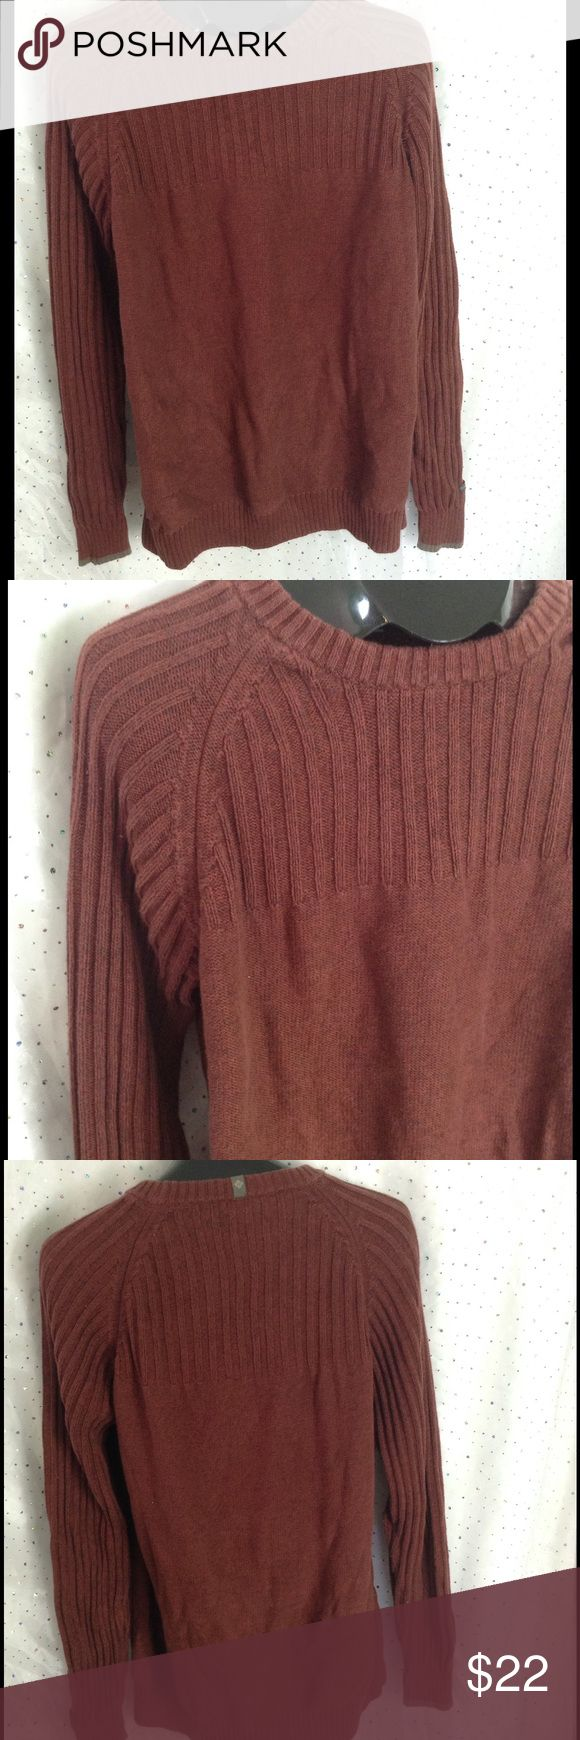 MENS XL Columbia Rust Ribbed Sweater Classic heavy weight rust colored sweater with the quality you trust from Columbia.  Ribbed at the shoulders and chest. Columbia Sweaters Crewneck